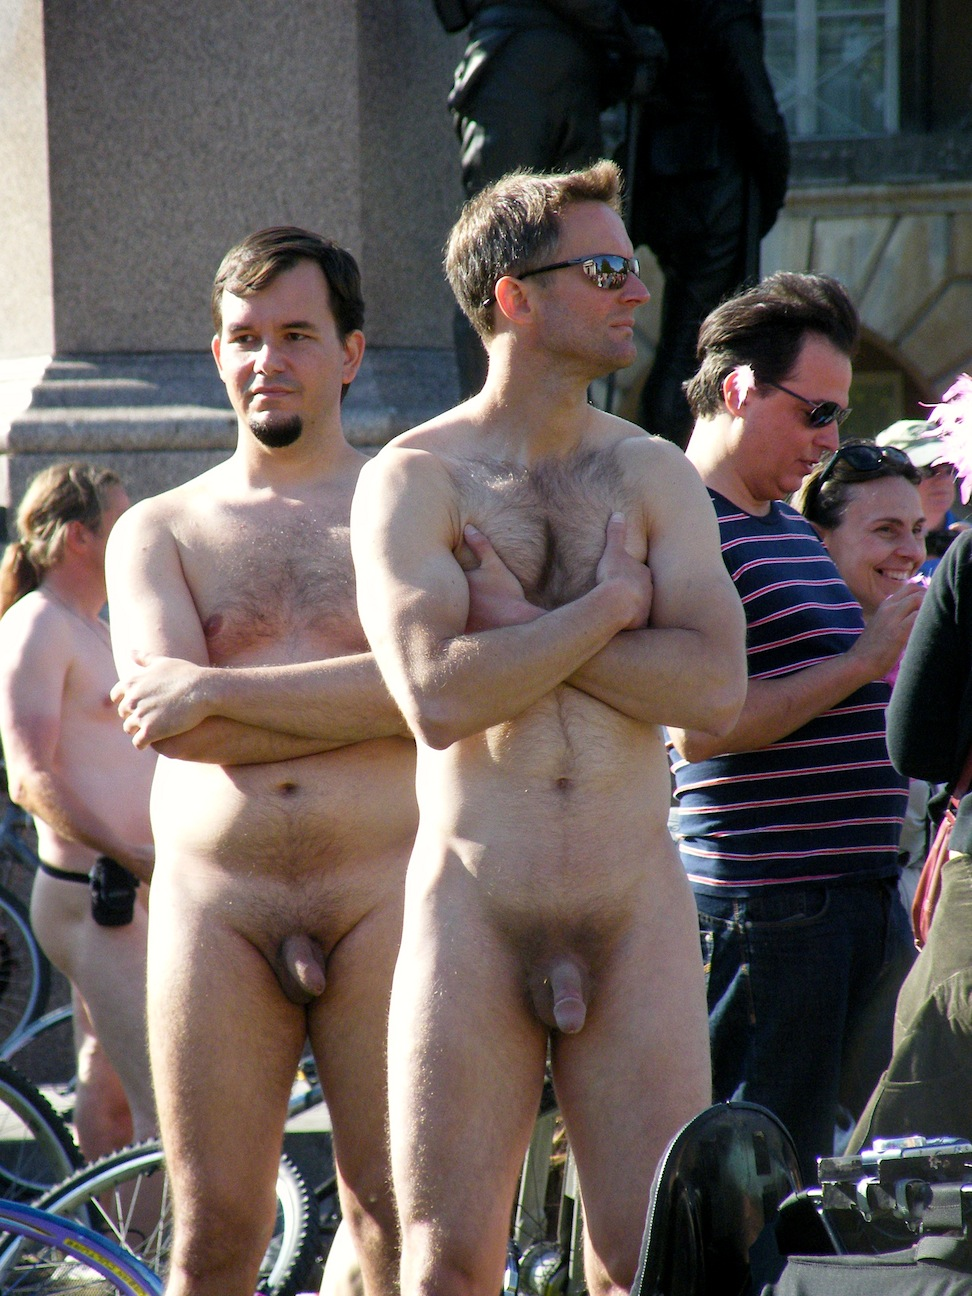 Are nude men world naked bike ride topic simply